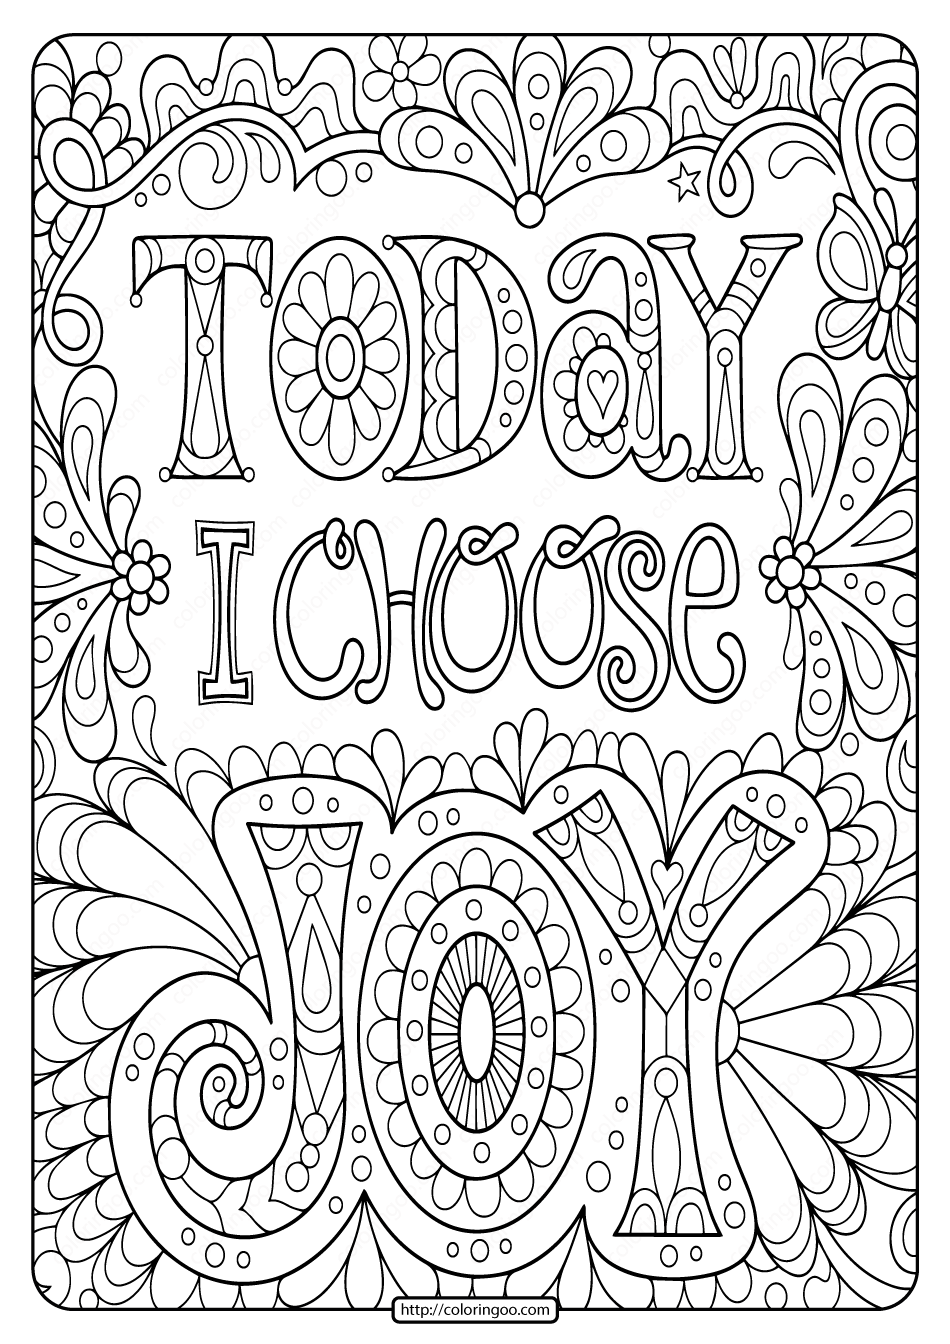 Today I Choose Joy Free Printable Coloring Page In 2020 Abstract Coloring Pages Mandala Coloring Pages Pattern Coloring Pages